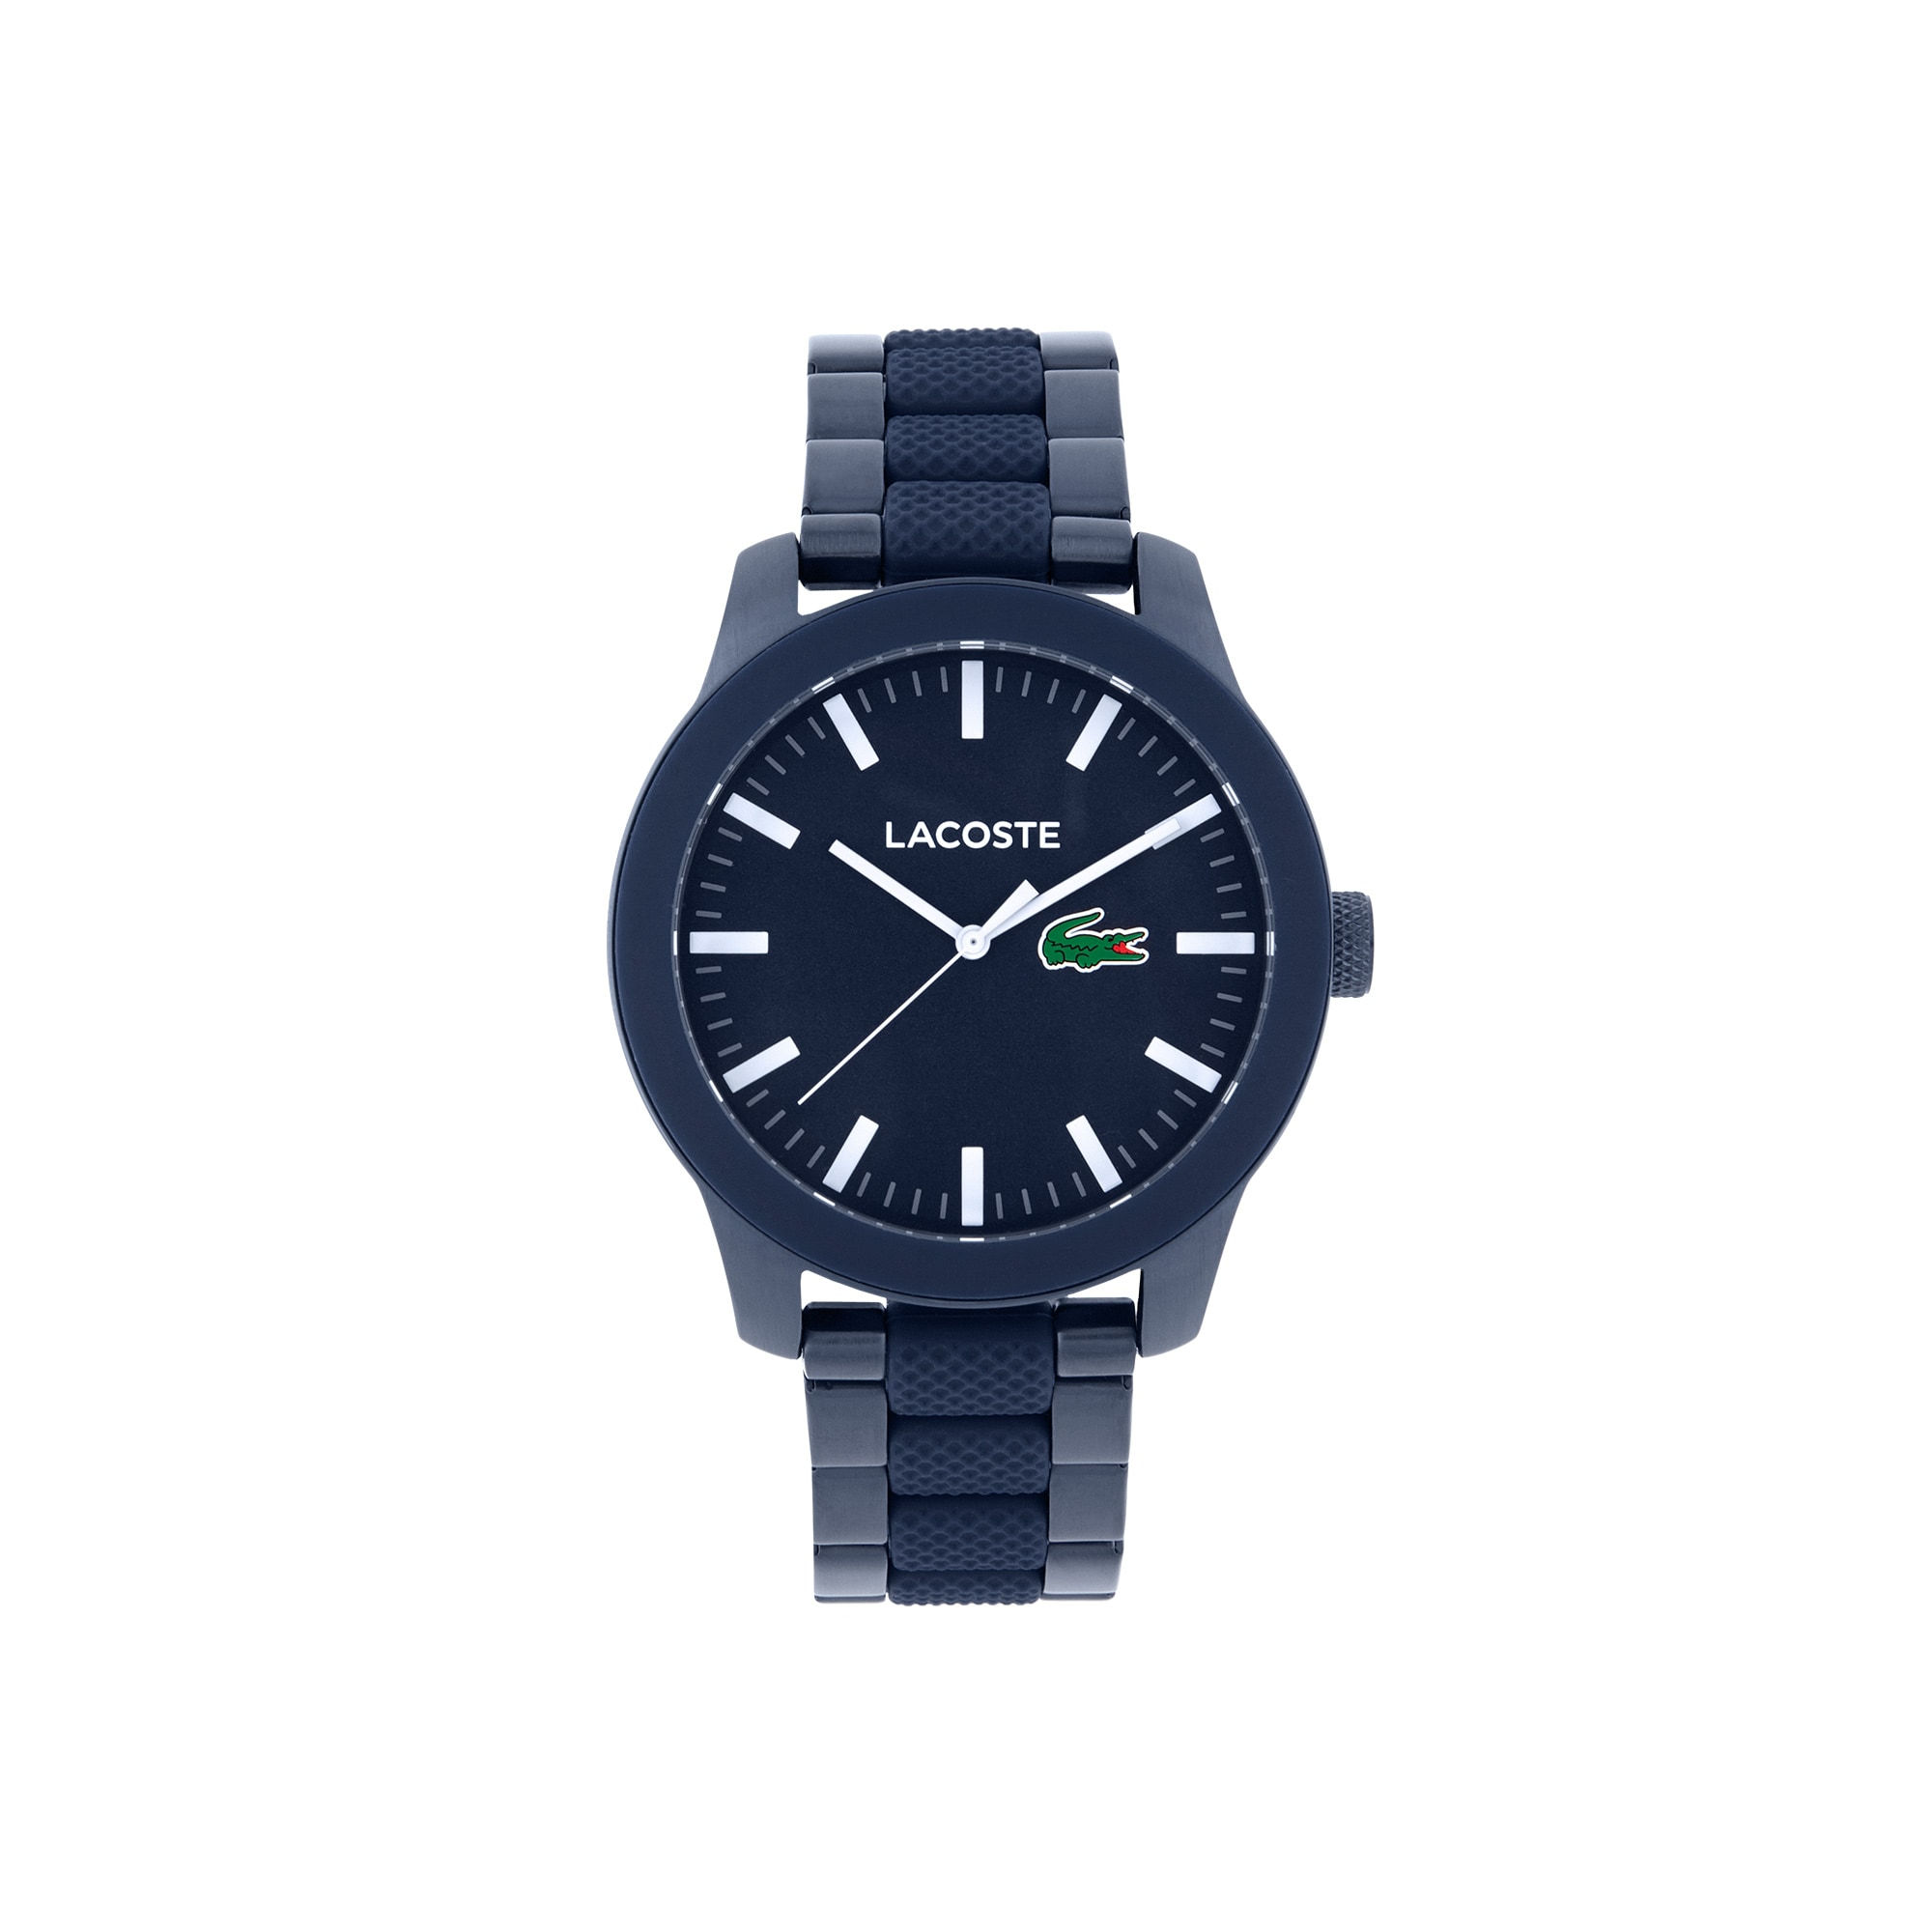 Men's Lacoste 12.12 Watch with Blue Steel Strap